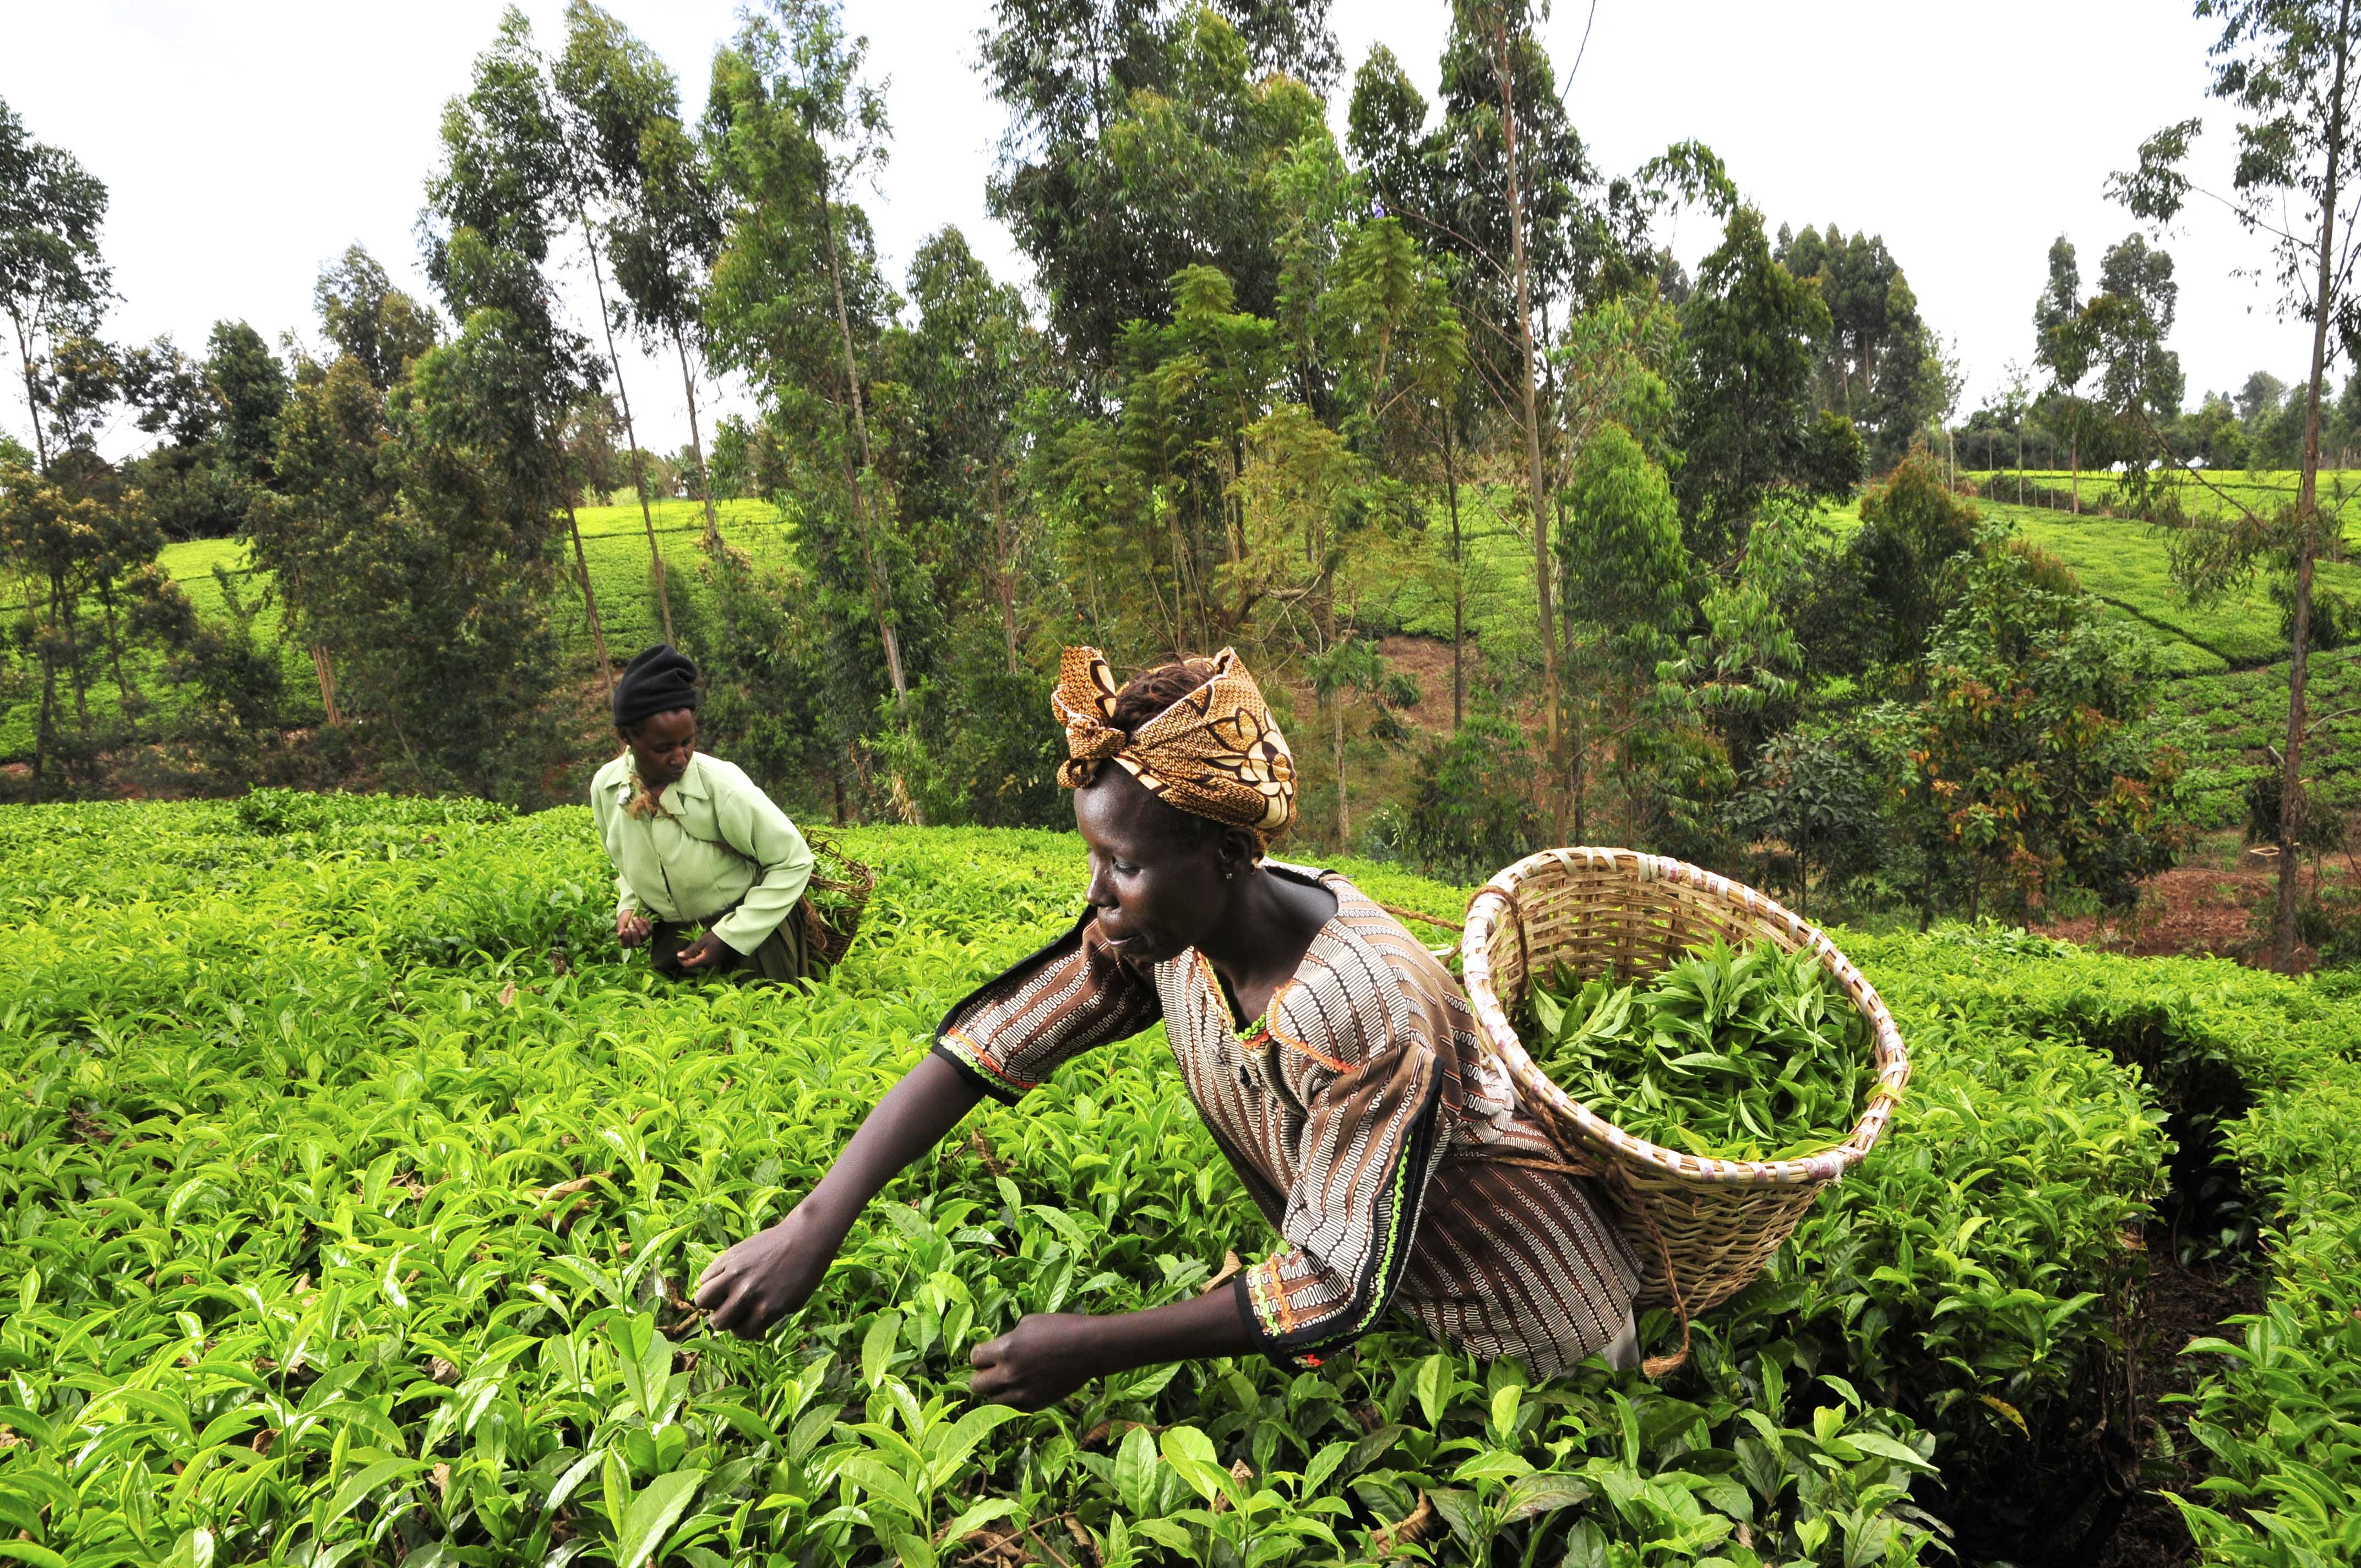 development and changes in agriculture in the world today